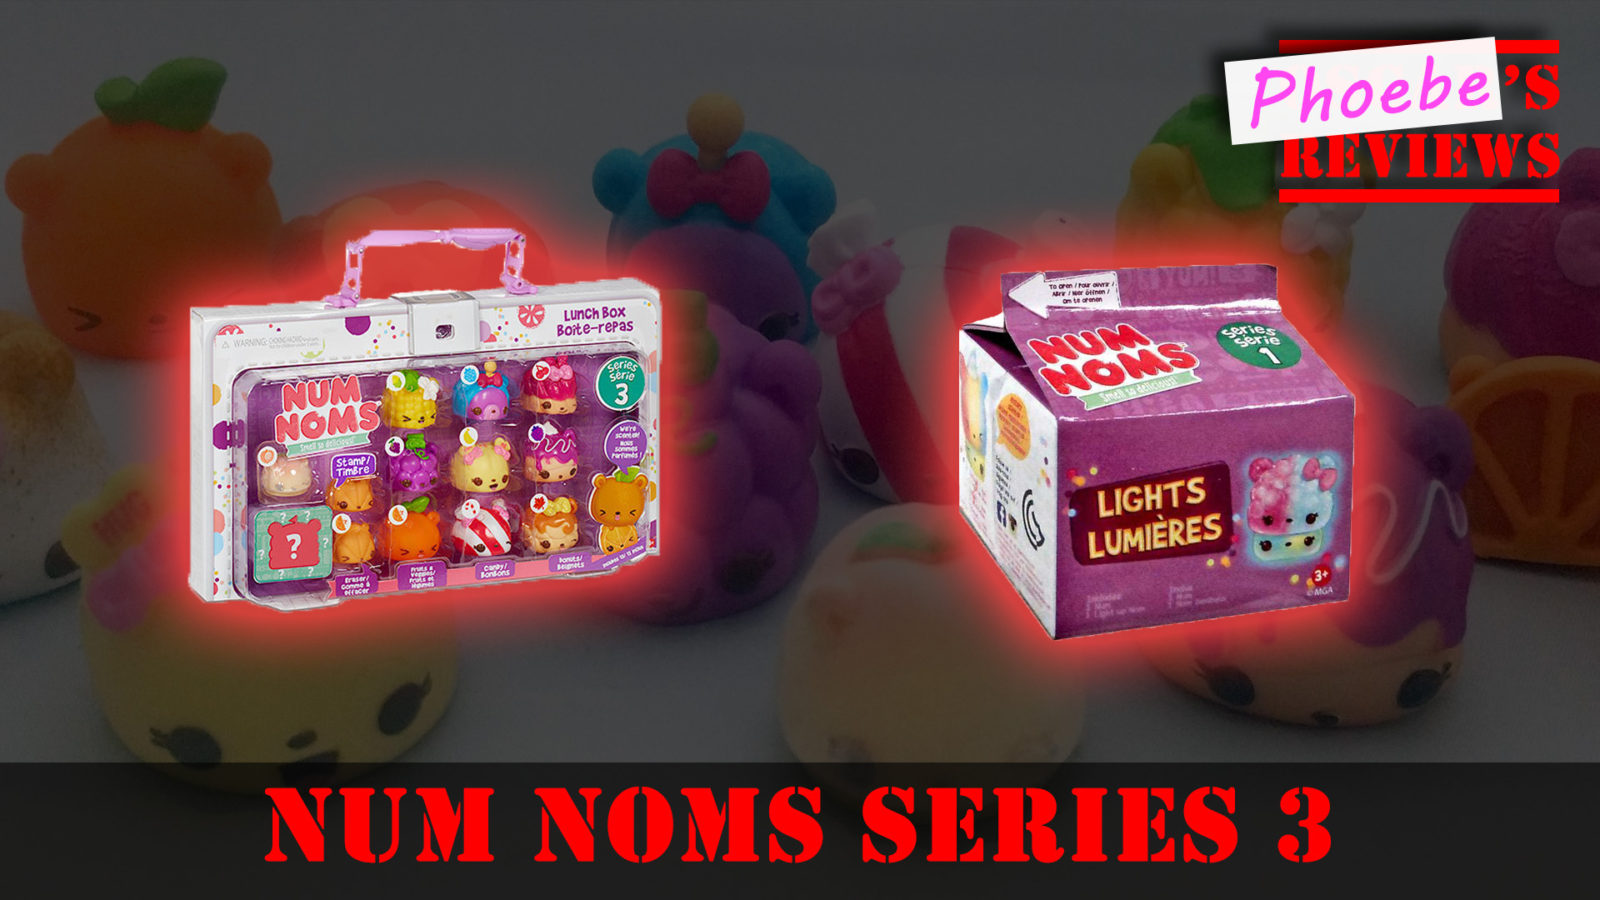 It's #UnBoxingDay with Num Noms Series 3 Lunch Box and Num Noms Lights